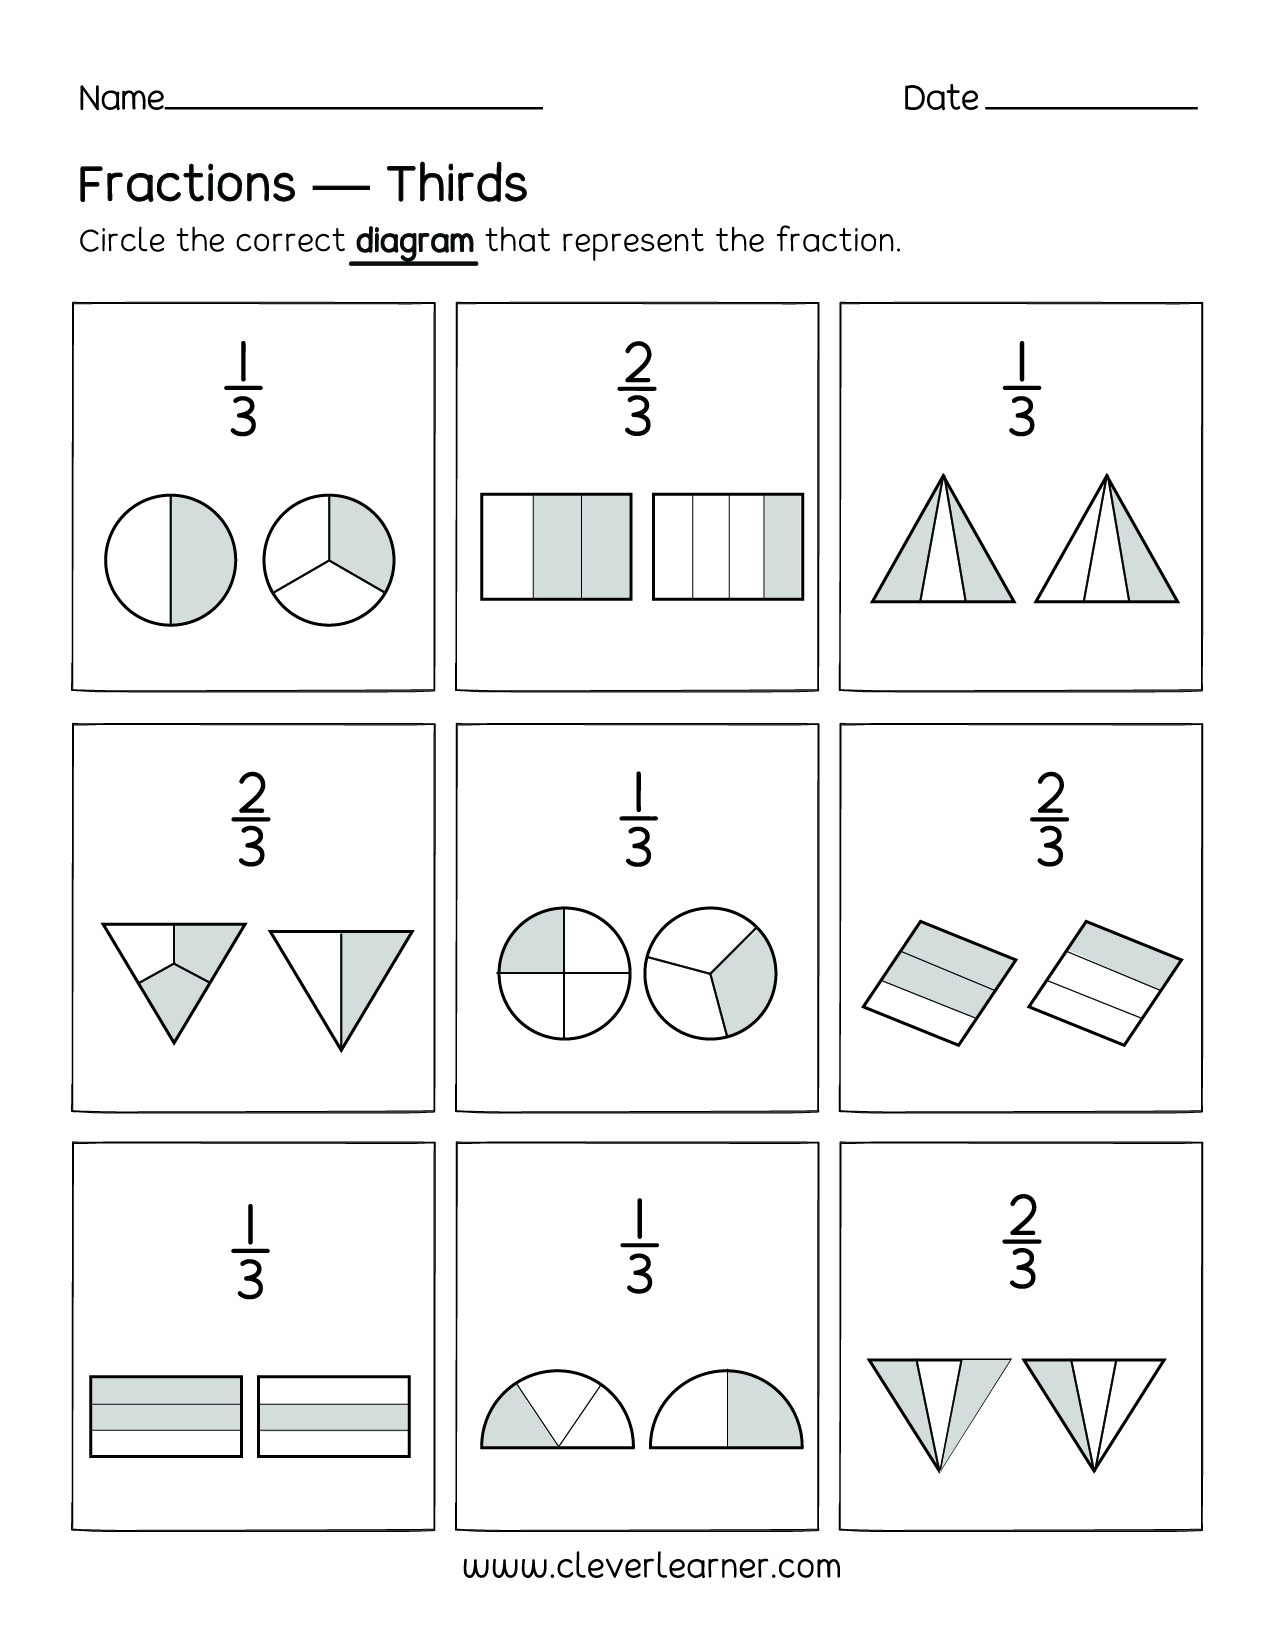 Drawing Fractions Worksheets